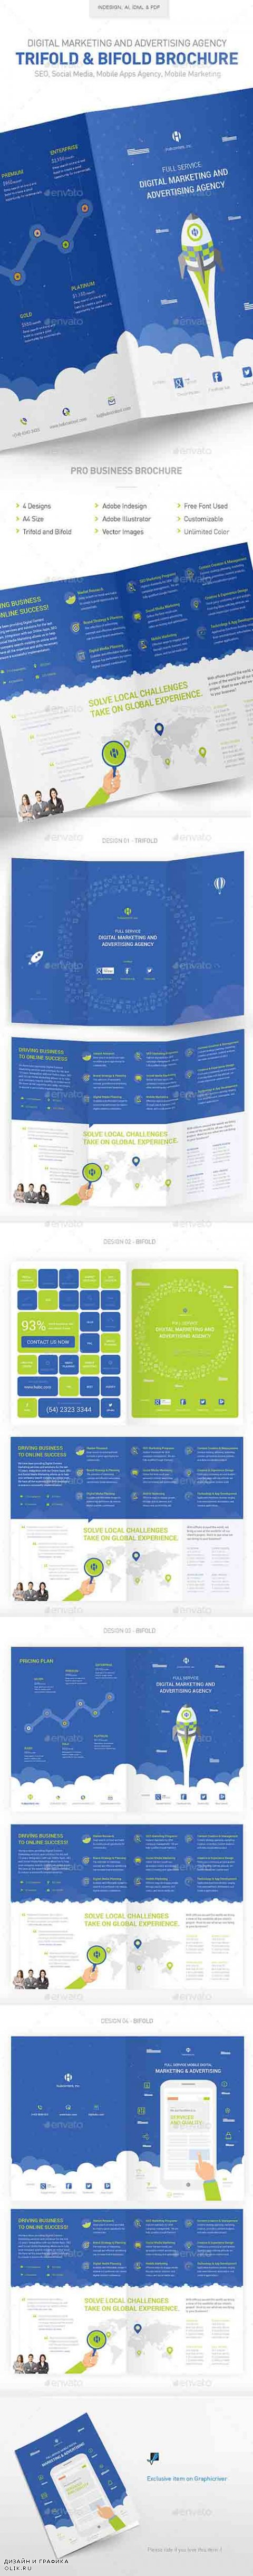 Digital Marketing & Advertising Agency Brochure 11828361